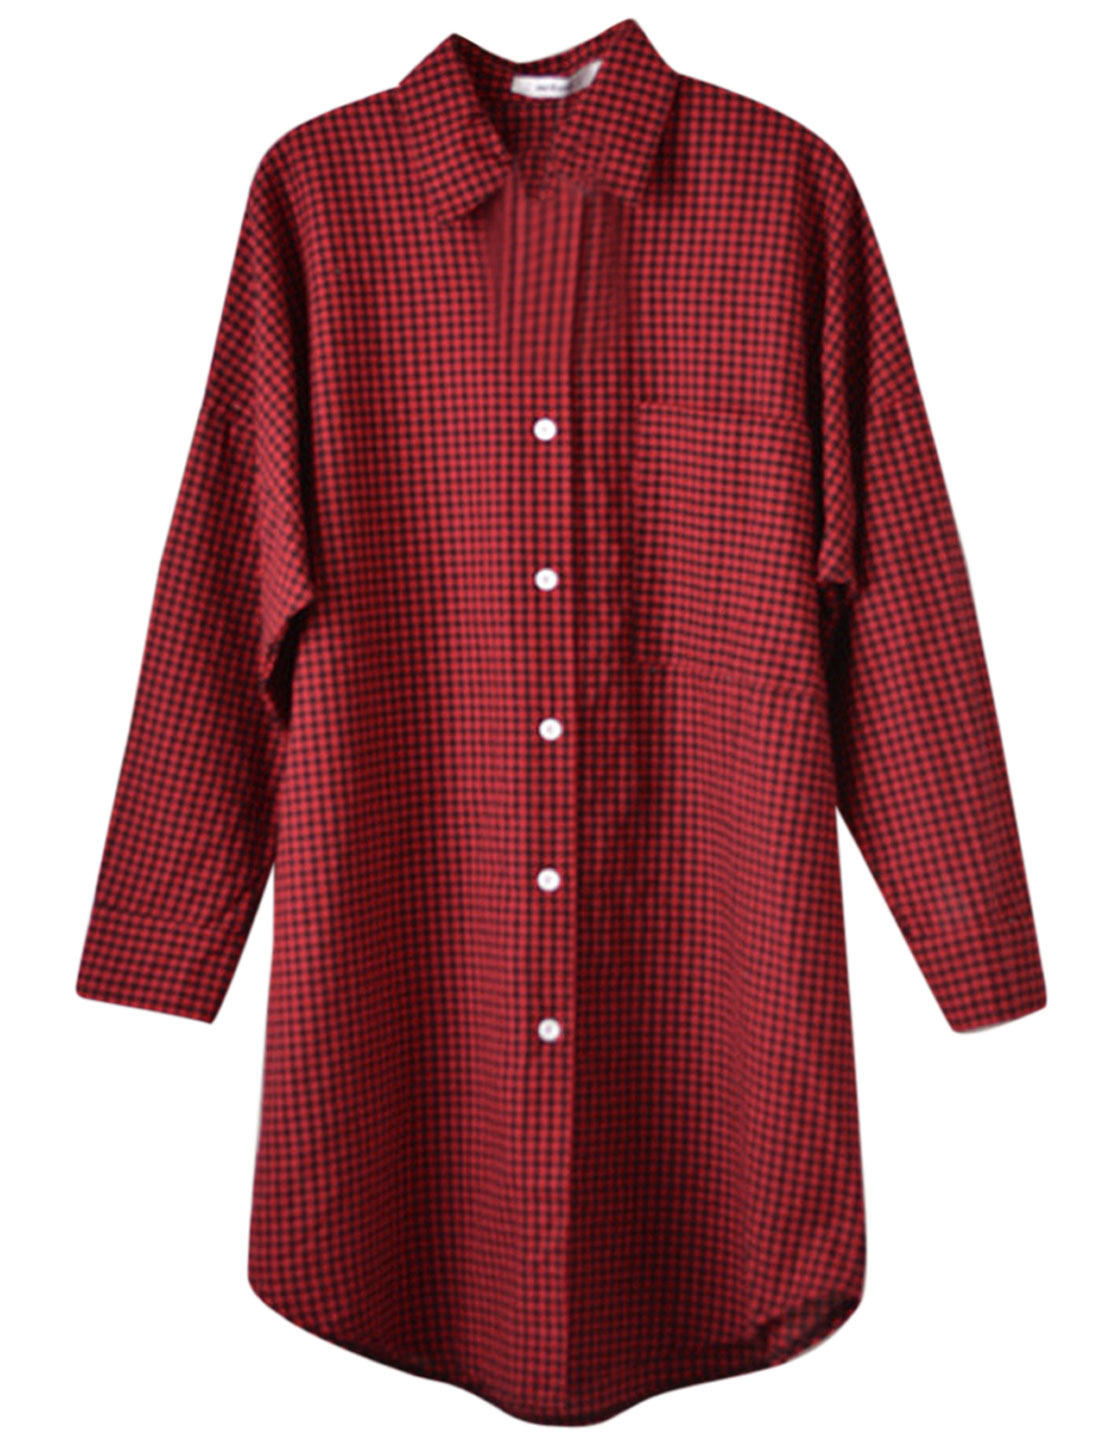 Lady Point Collar Button Closure Front Checks Pattern Tunic Top Red S